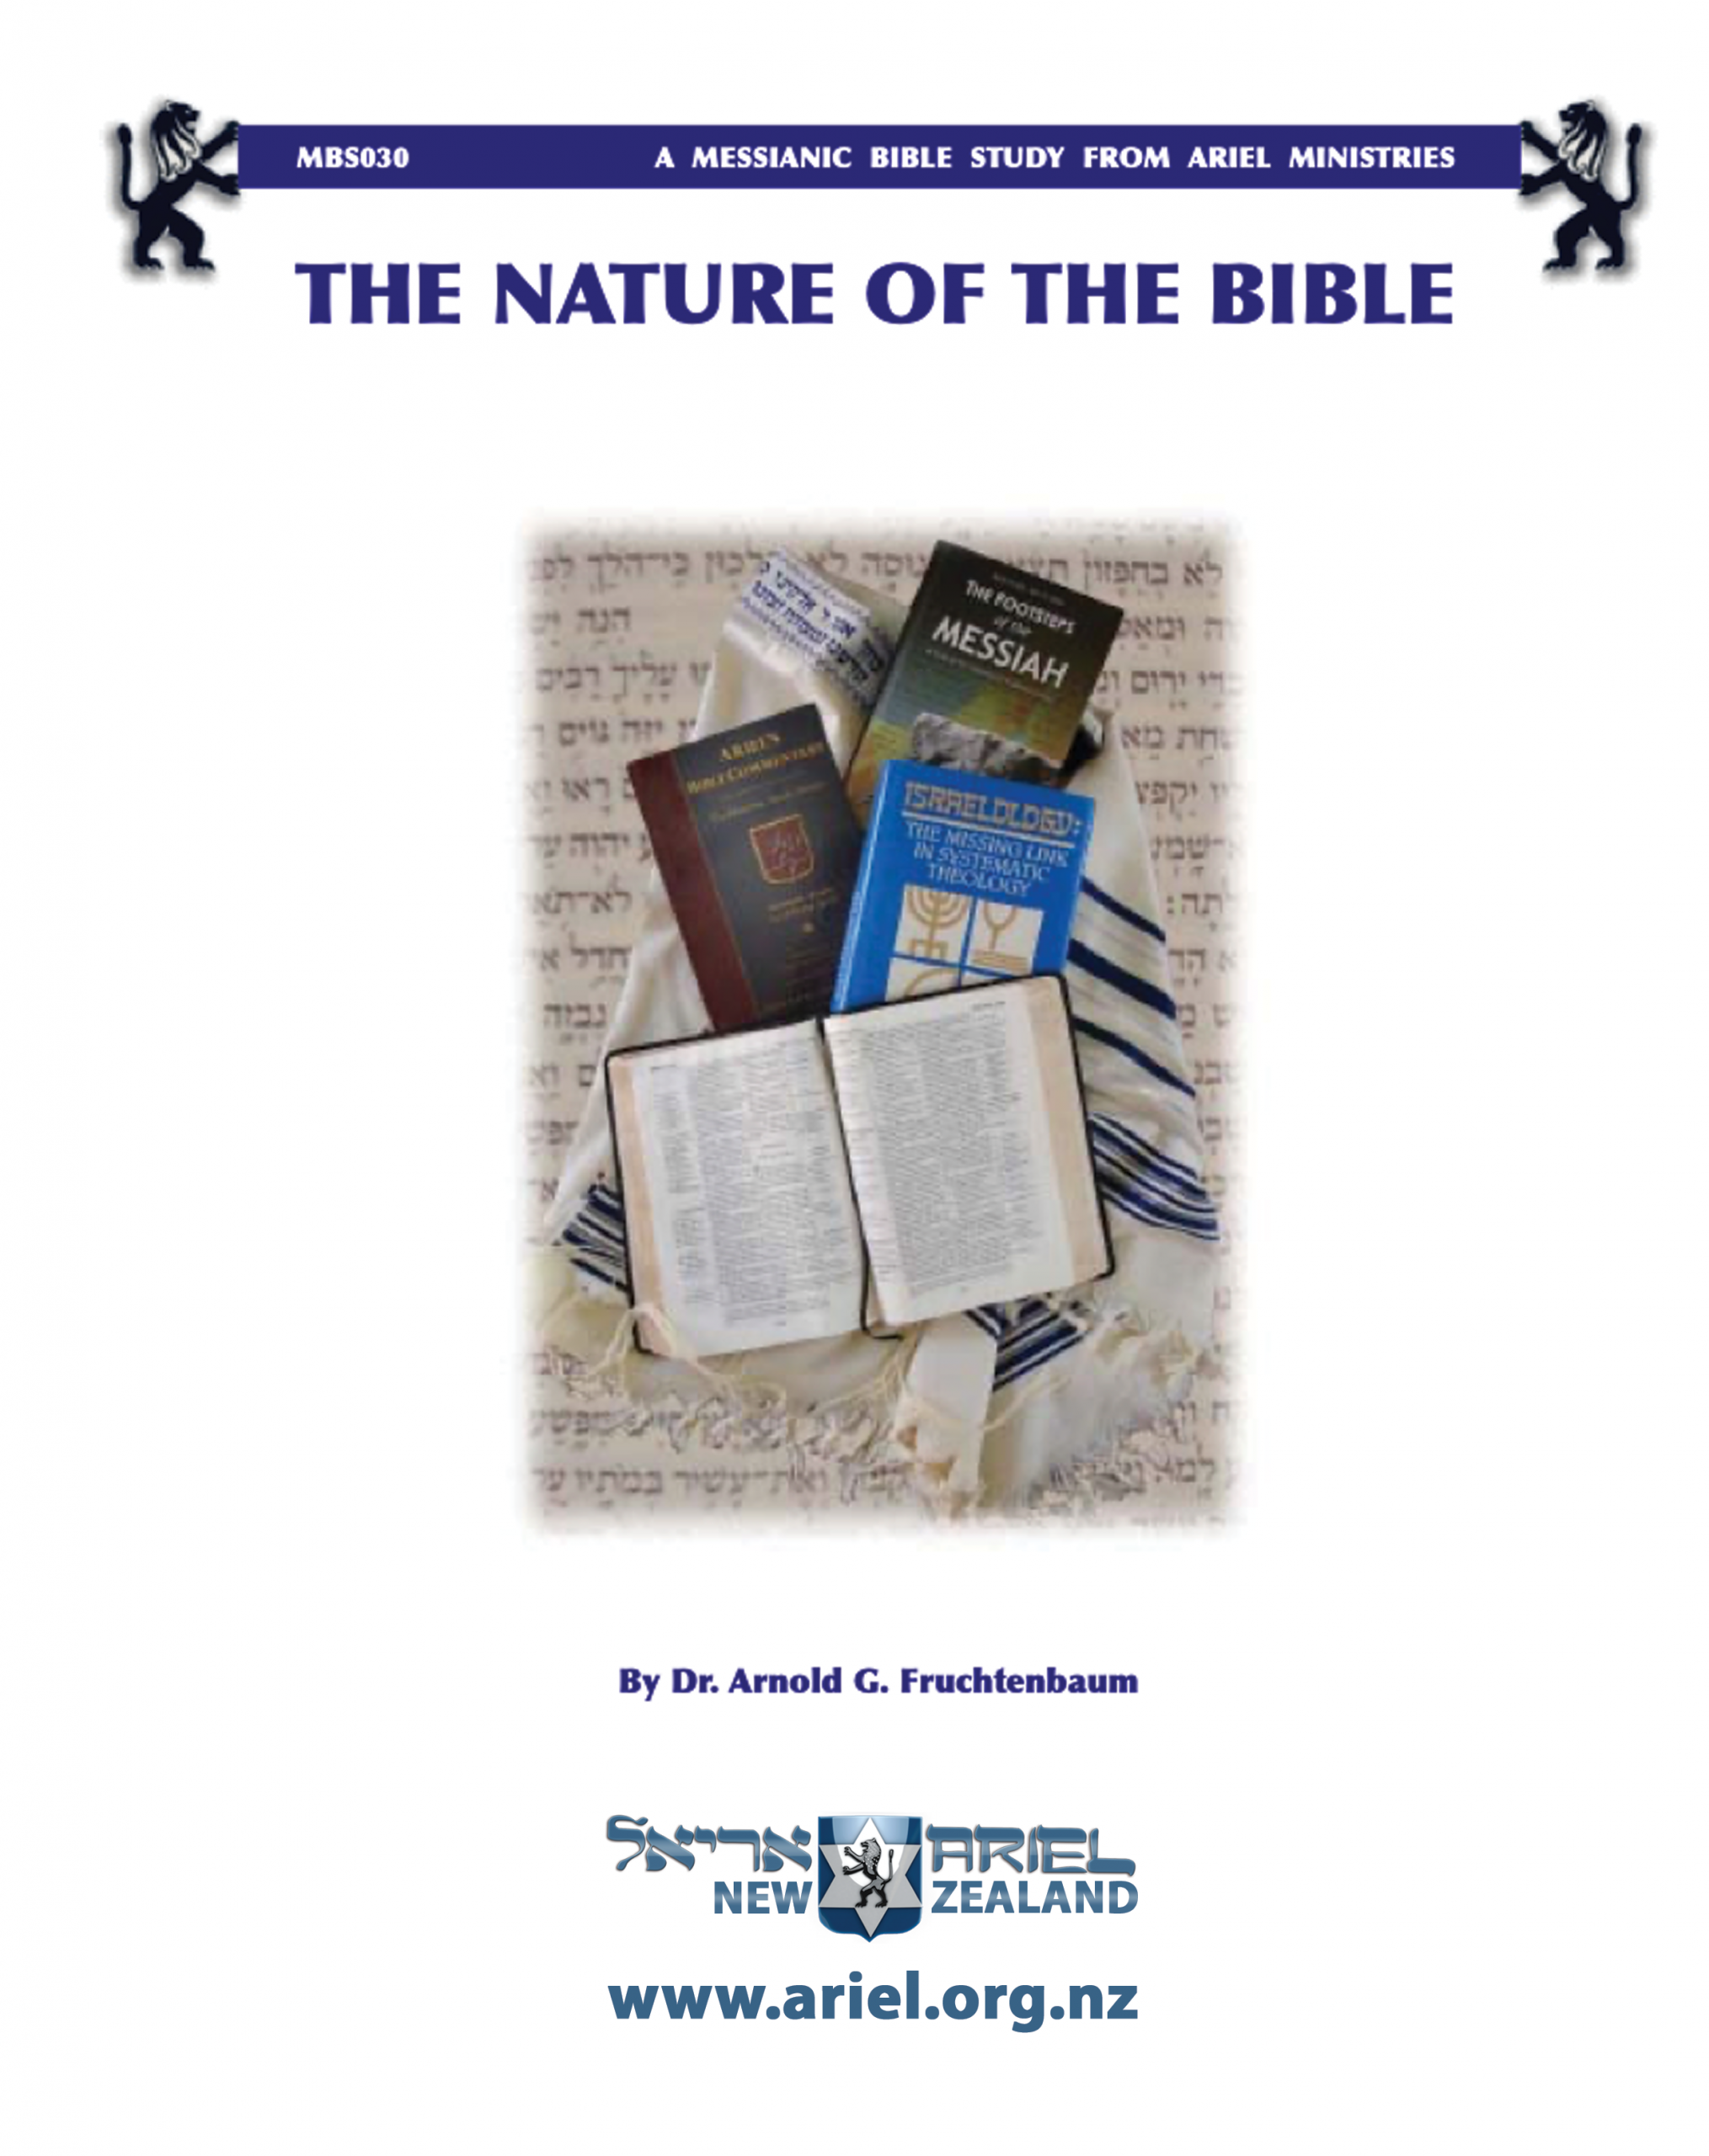 The Nature of the Bible